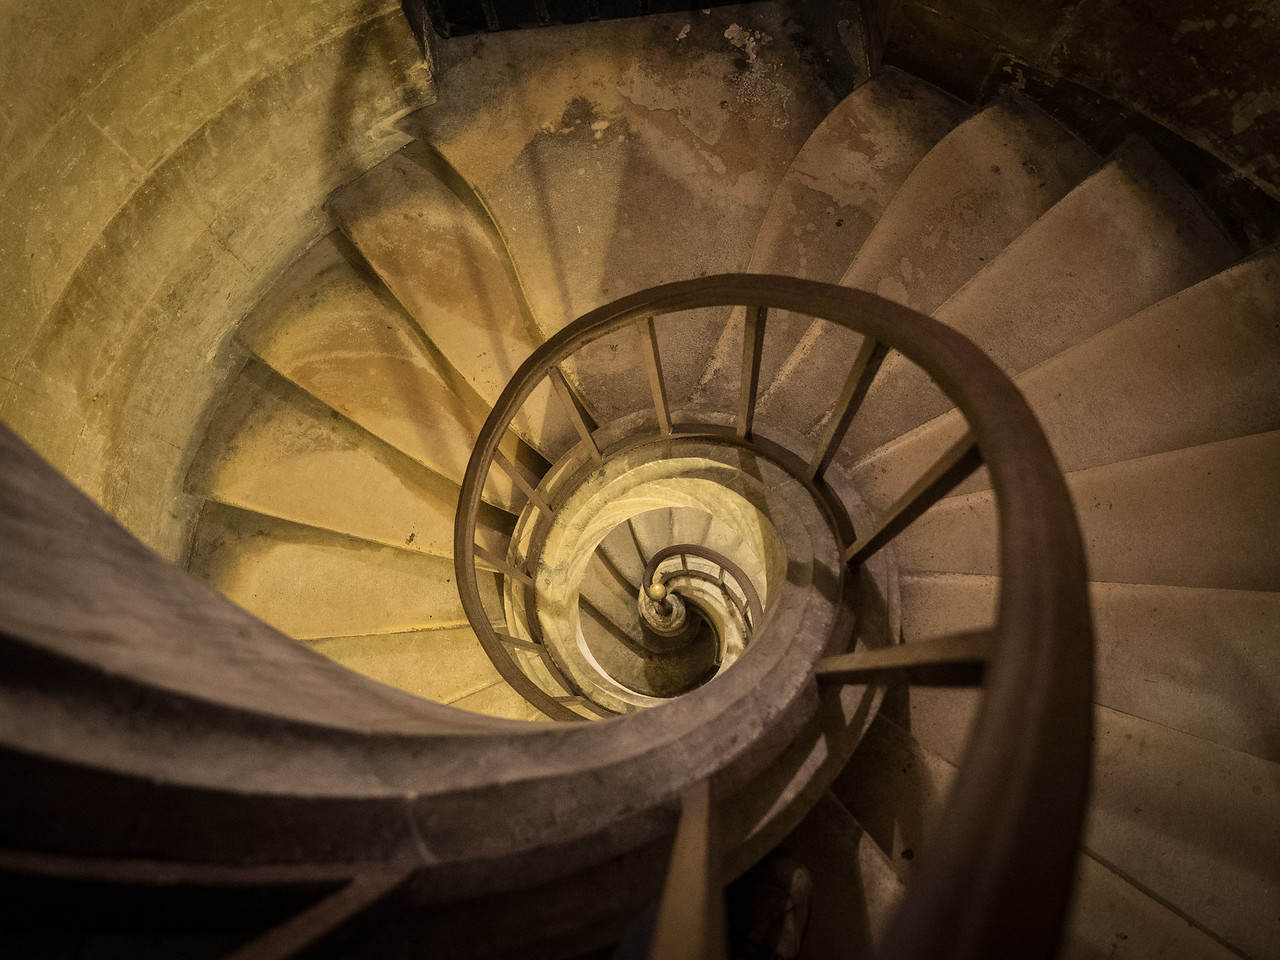 The spiral staircase down into the crypt.